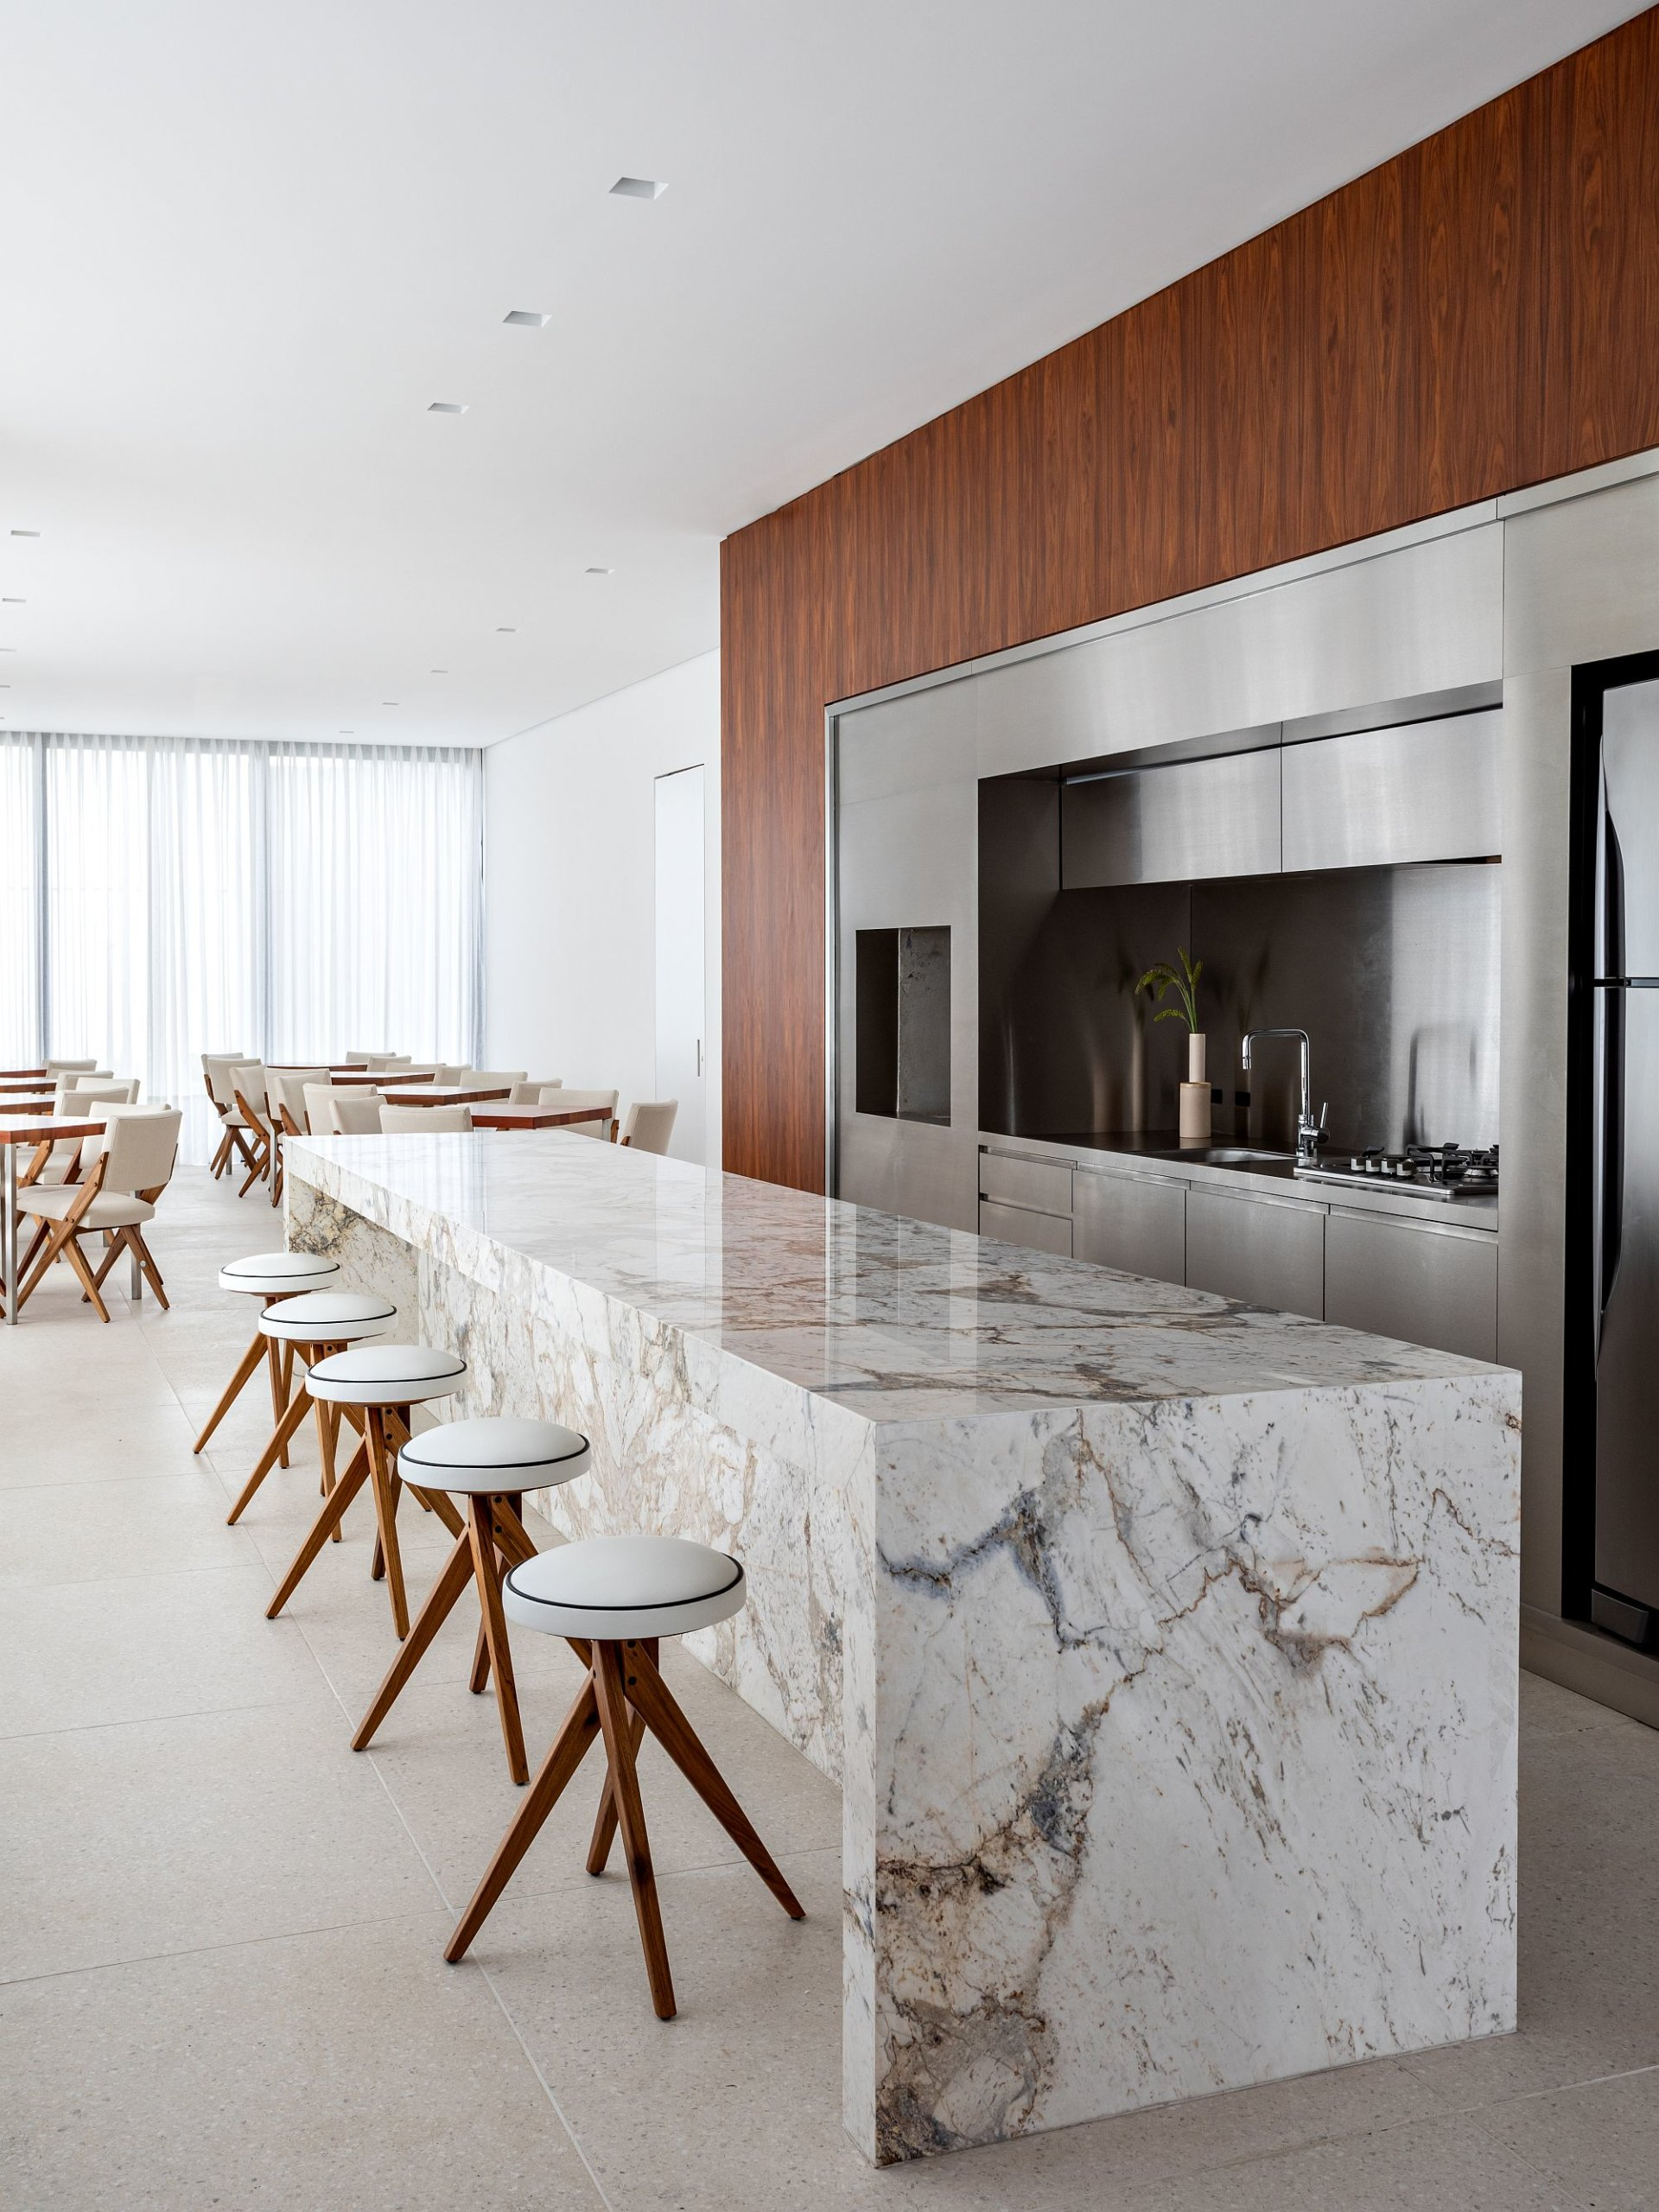 Exquisite Brazilian marble kitchen island is an absolute showstopper